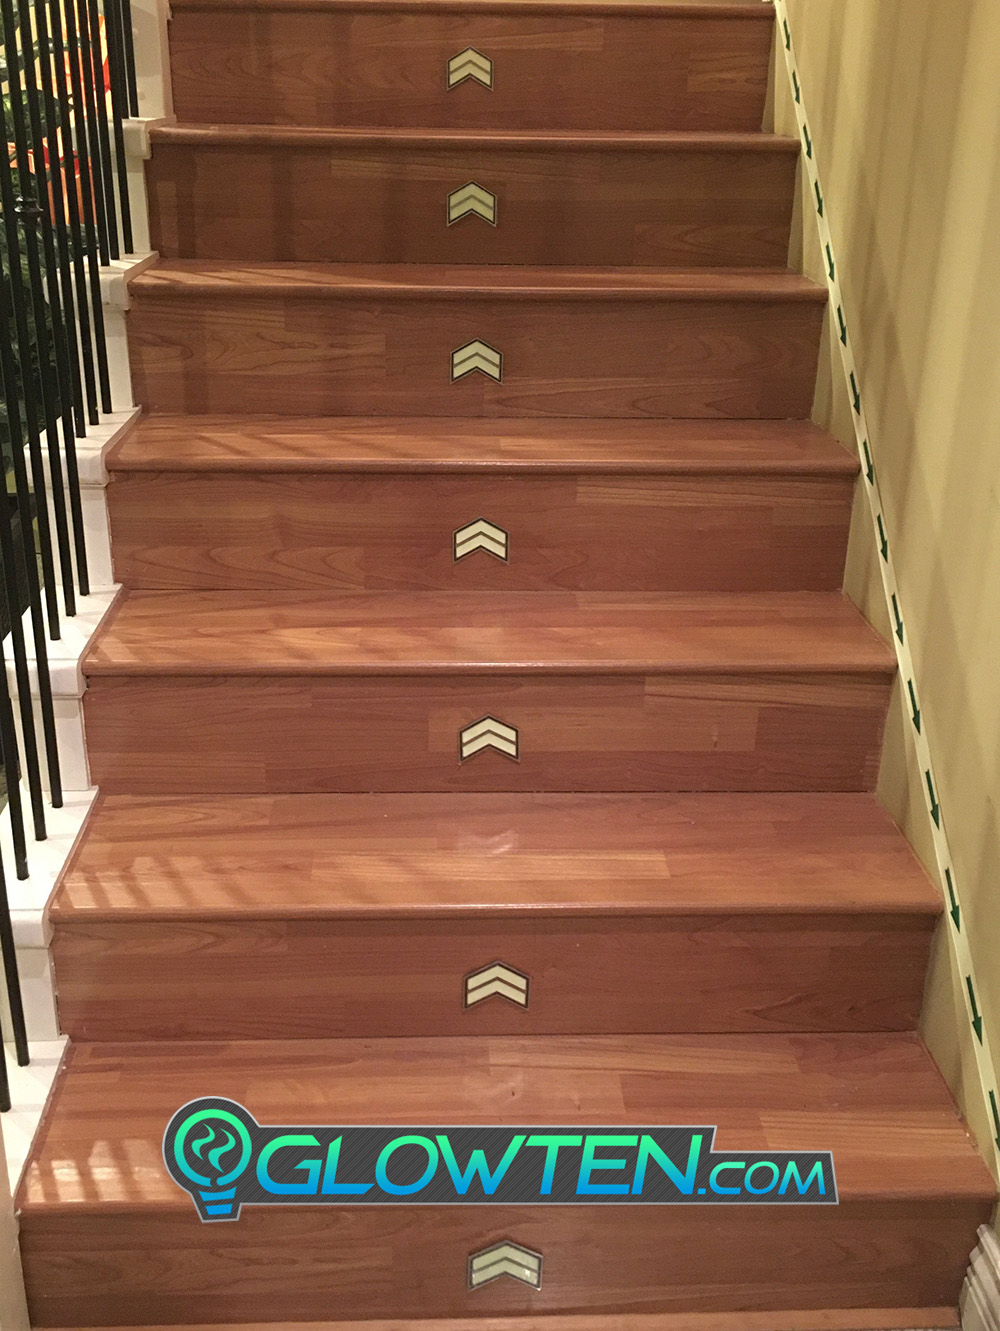 GLOWTEN.com - Get Yours Now Glow in the Dark Stairs Direction Guide Sign TWO ARROWS Pointer Photoluminescent Stainless Steel Green Glow picture photo cap preview pic 6